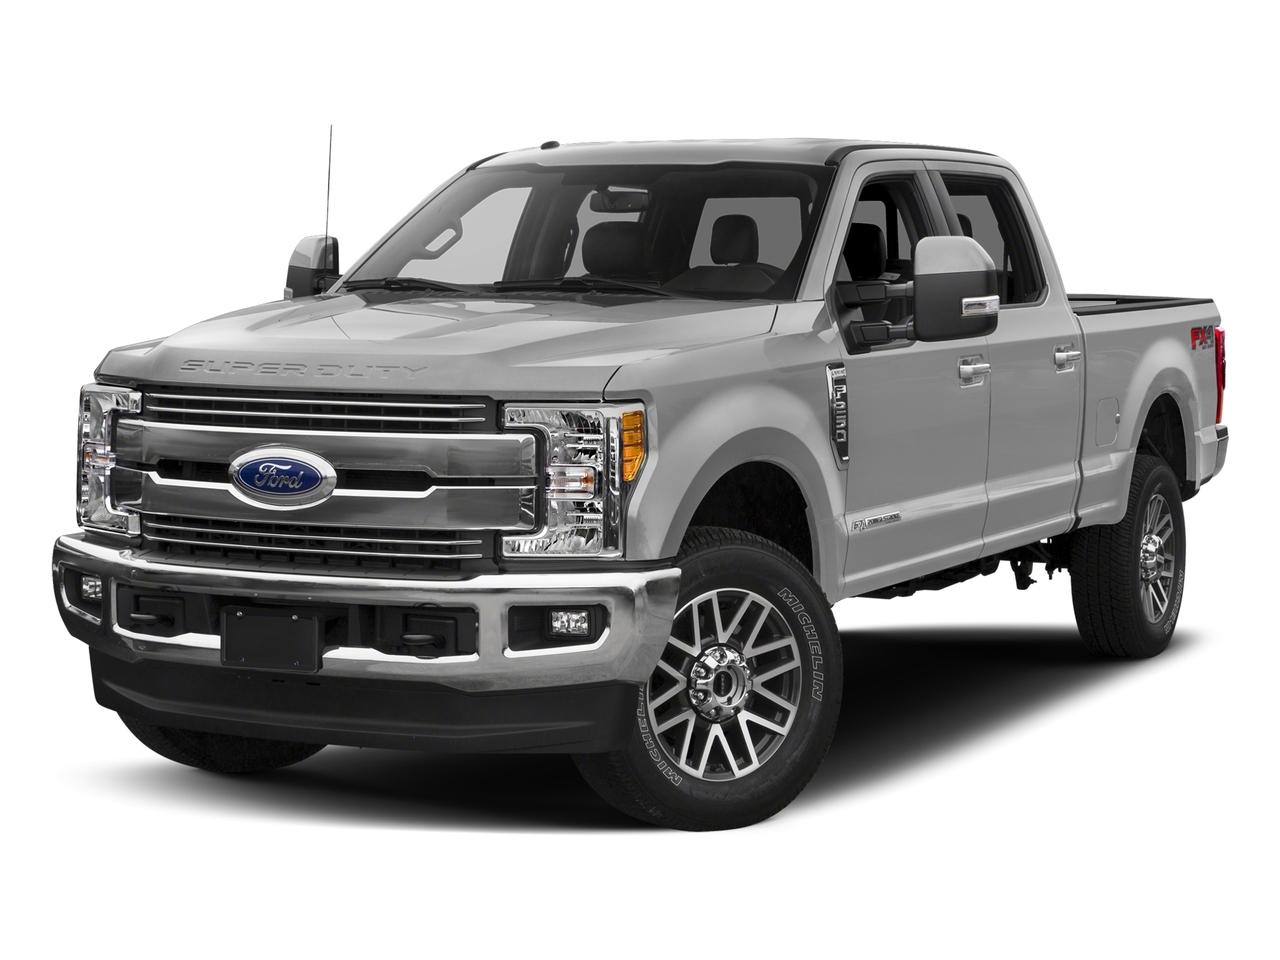 2017 Ford Super Duty F-250 SRW Vehicle Photo in Houston, TX 77074